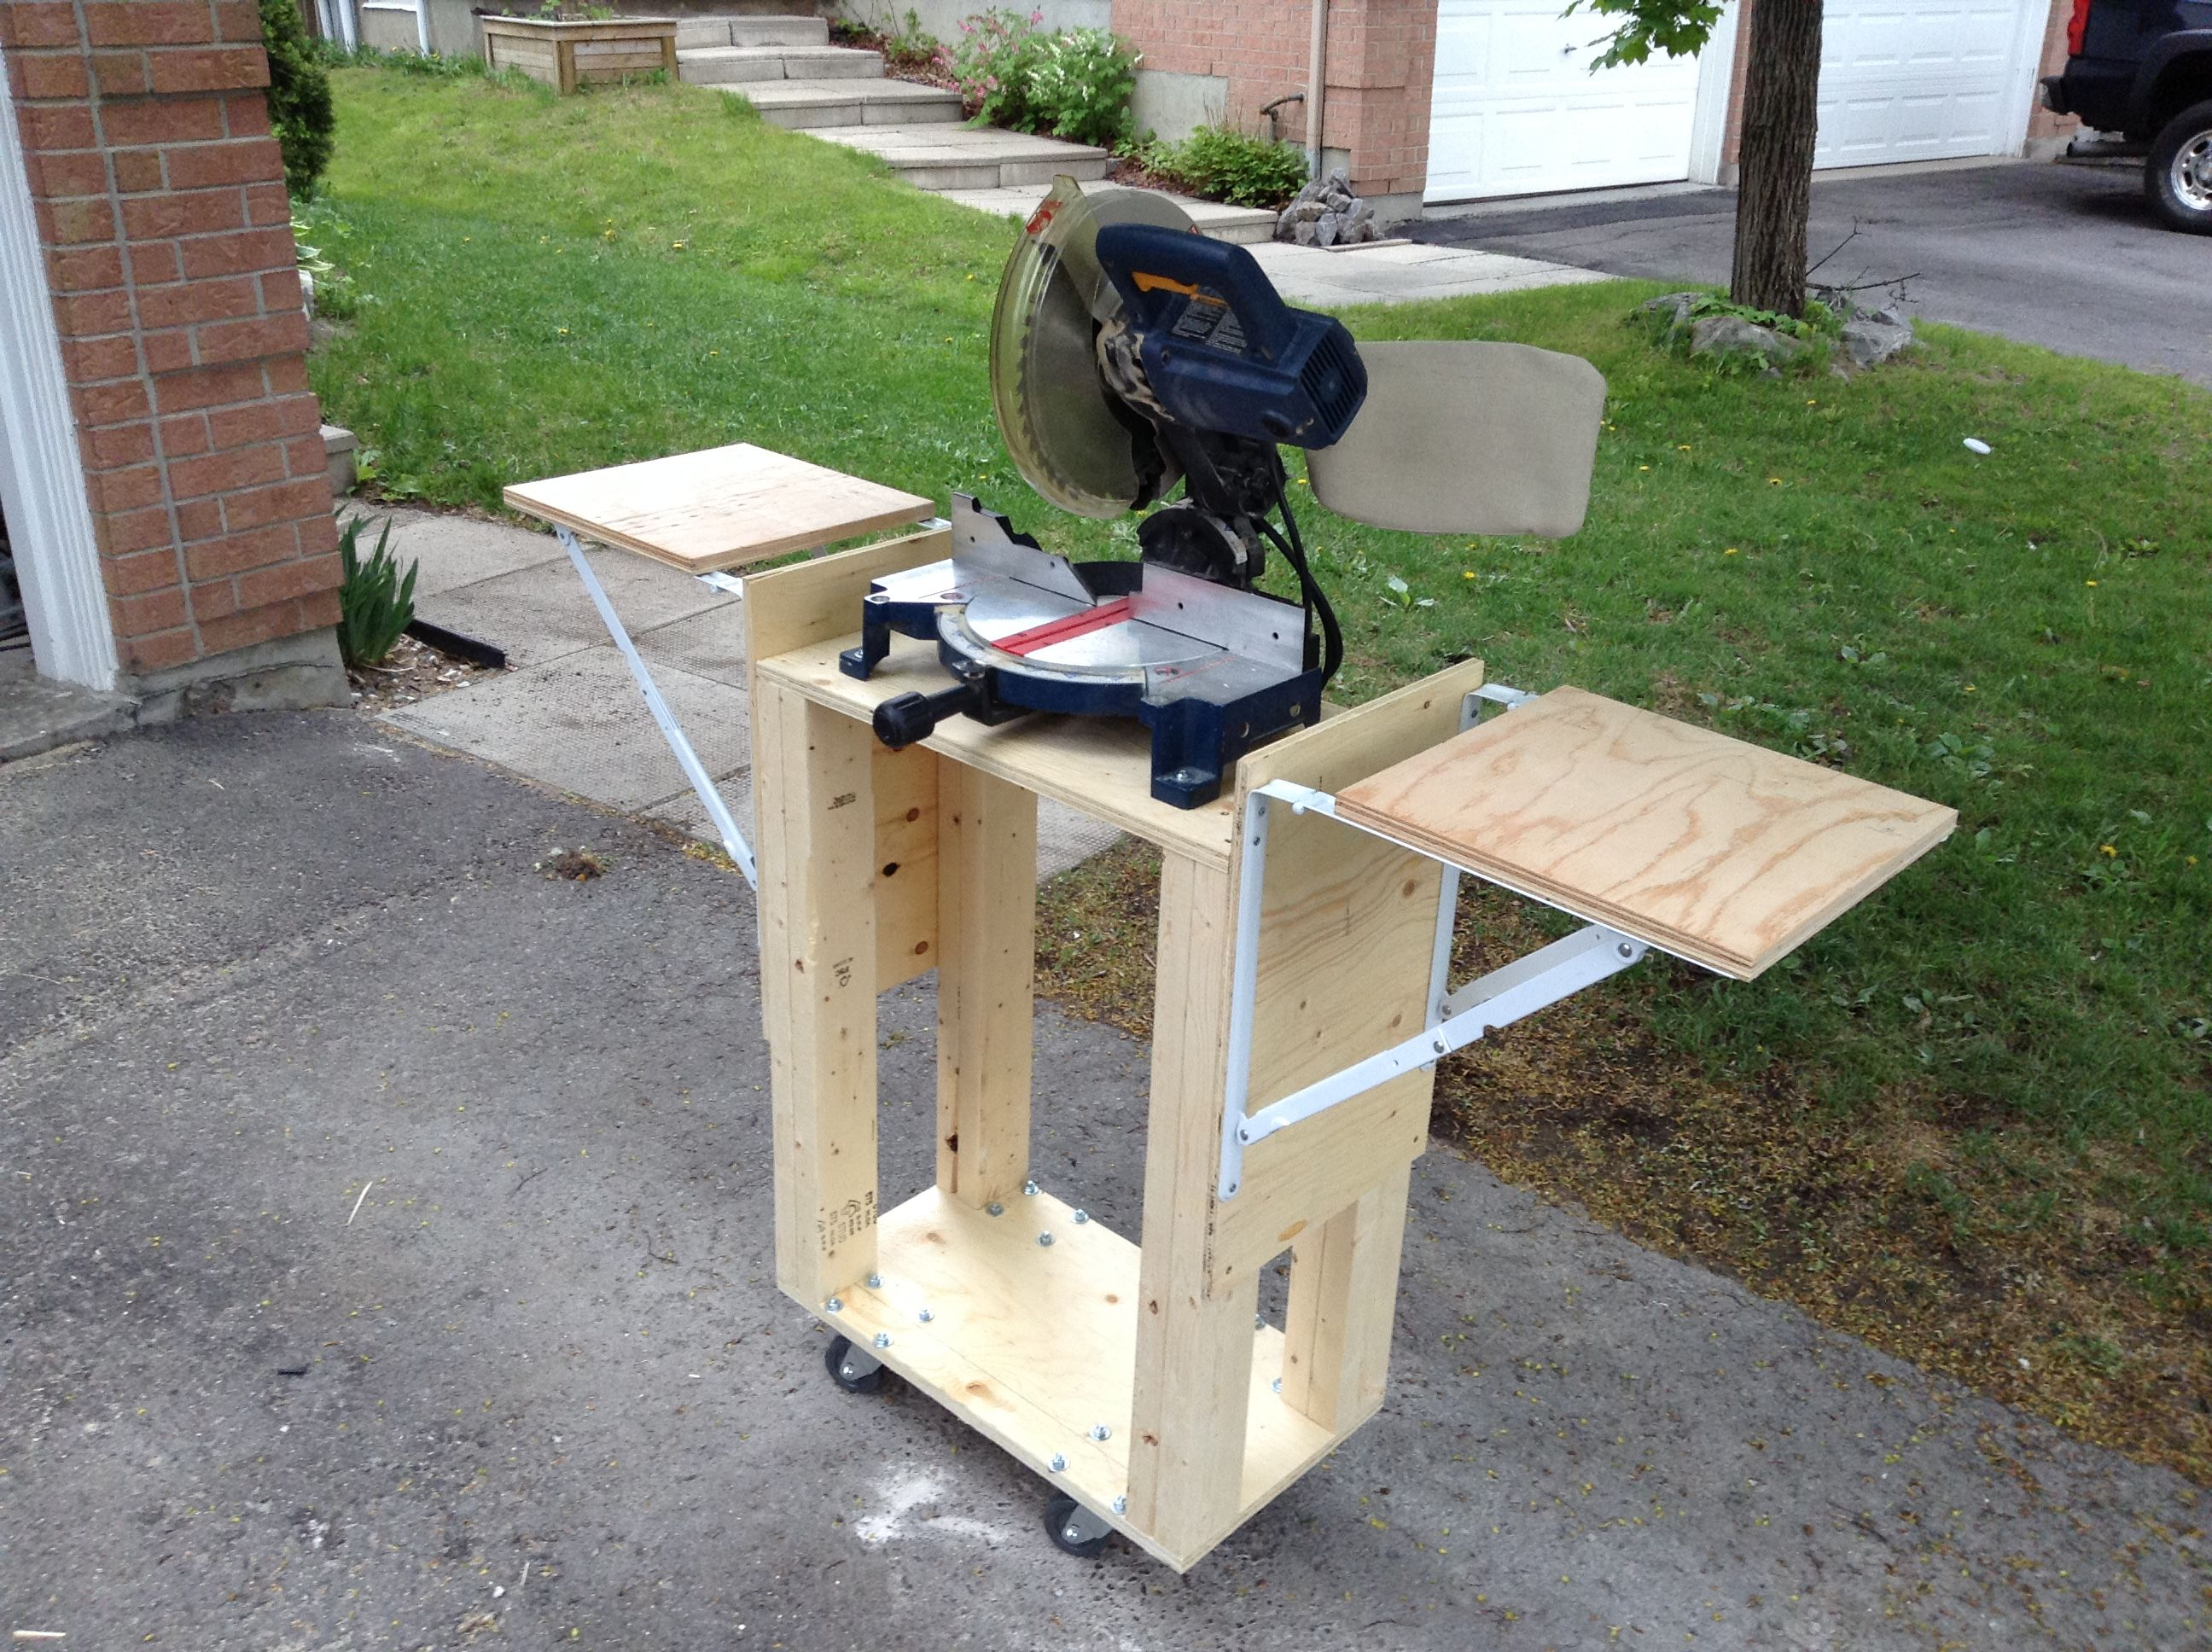 A Mobile Miter Saw Stand Miter Saw Woodworking Projects Diy Table Saw